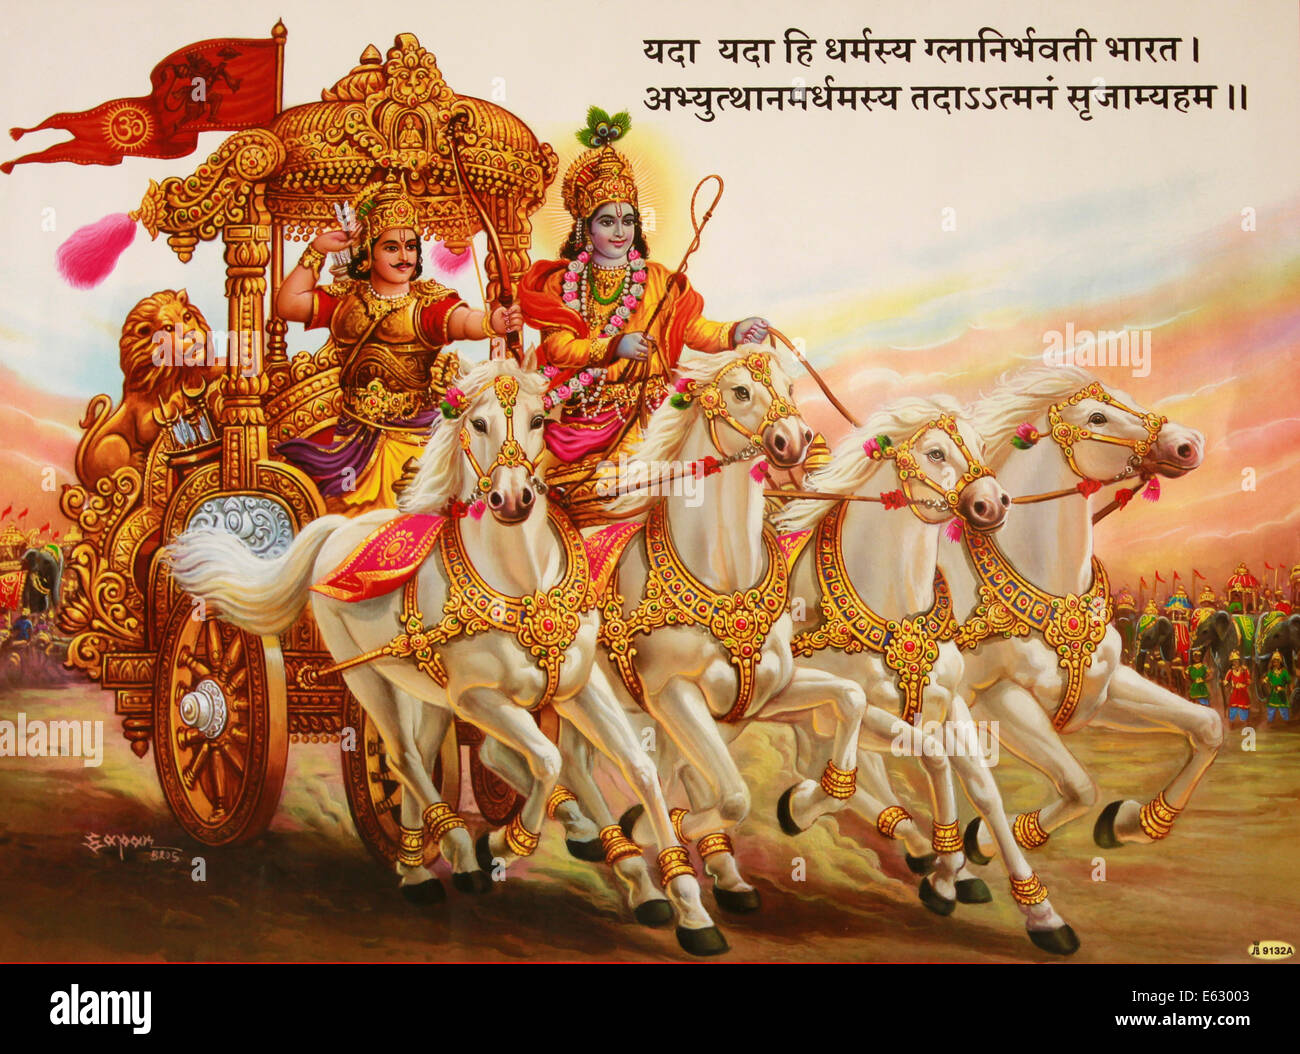 Free Wallpapers Wid Quotes Painting Depicting The Scene In Bhagavad Gita Where Lord